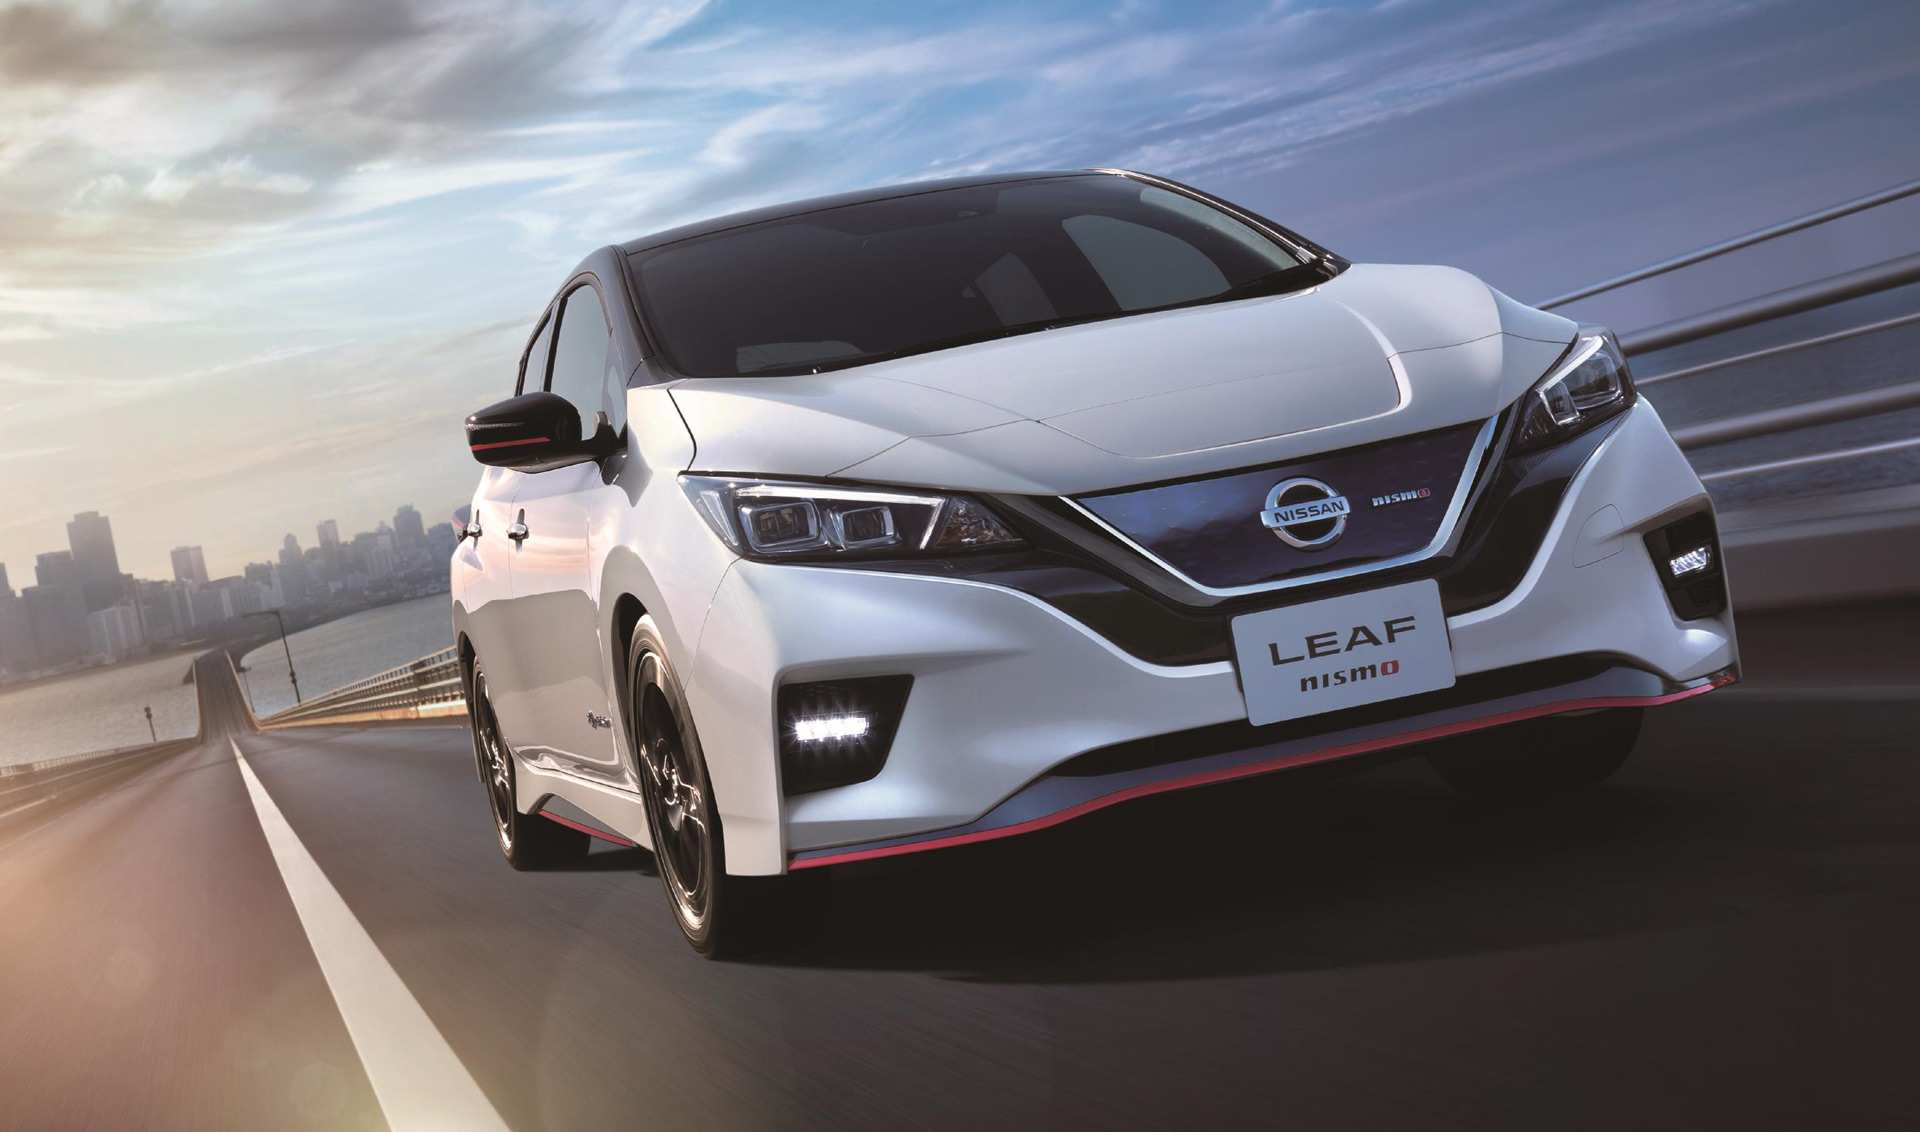 21 Concept of Nissan Leaf Nismo 2019 Performance And New Engine New Review by Nissan Leaf Nismo 2019 Performance And New Engine